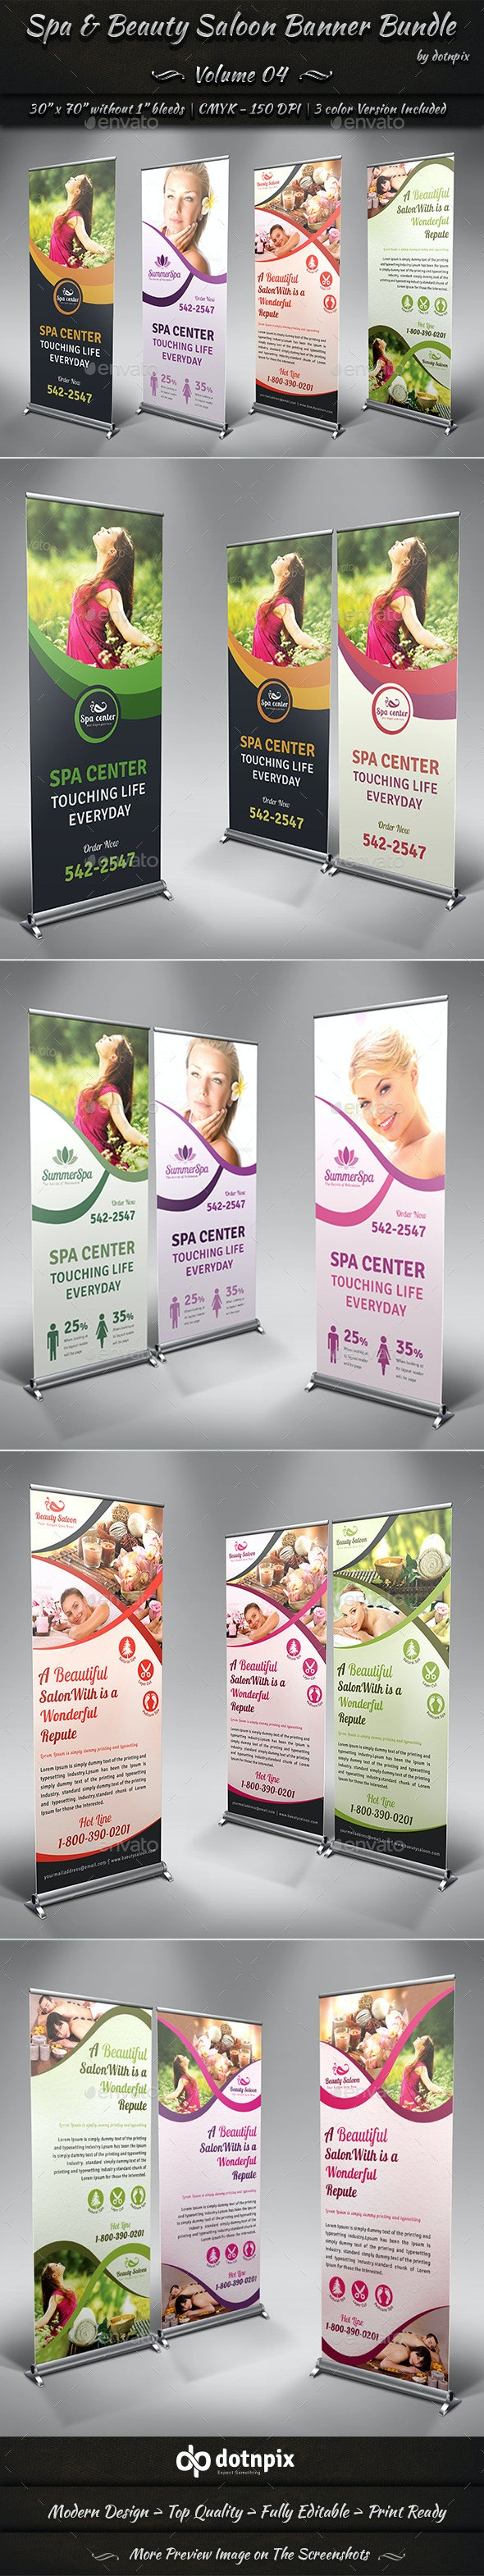 Spa & Beauty Saloon Banner Bundle | Volume 4 - Signage Print Templates